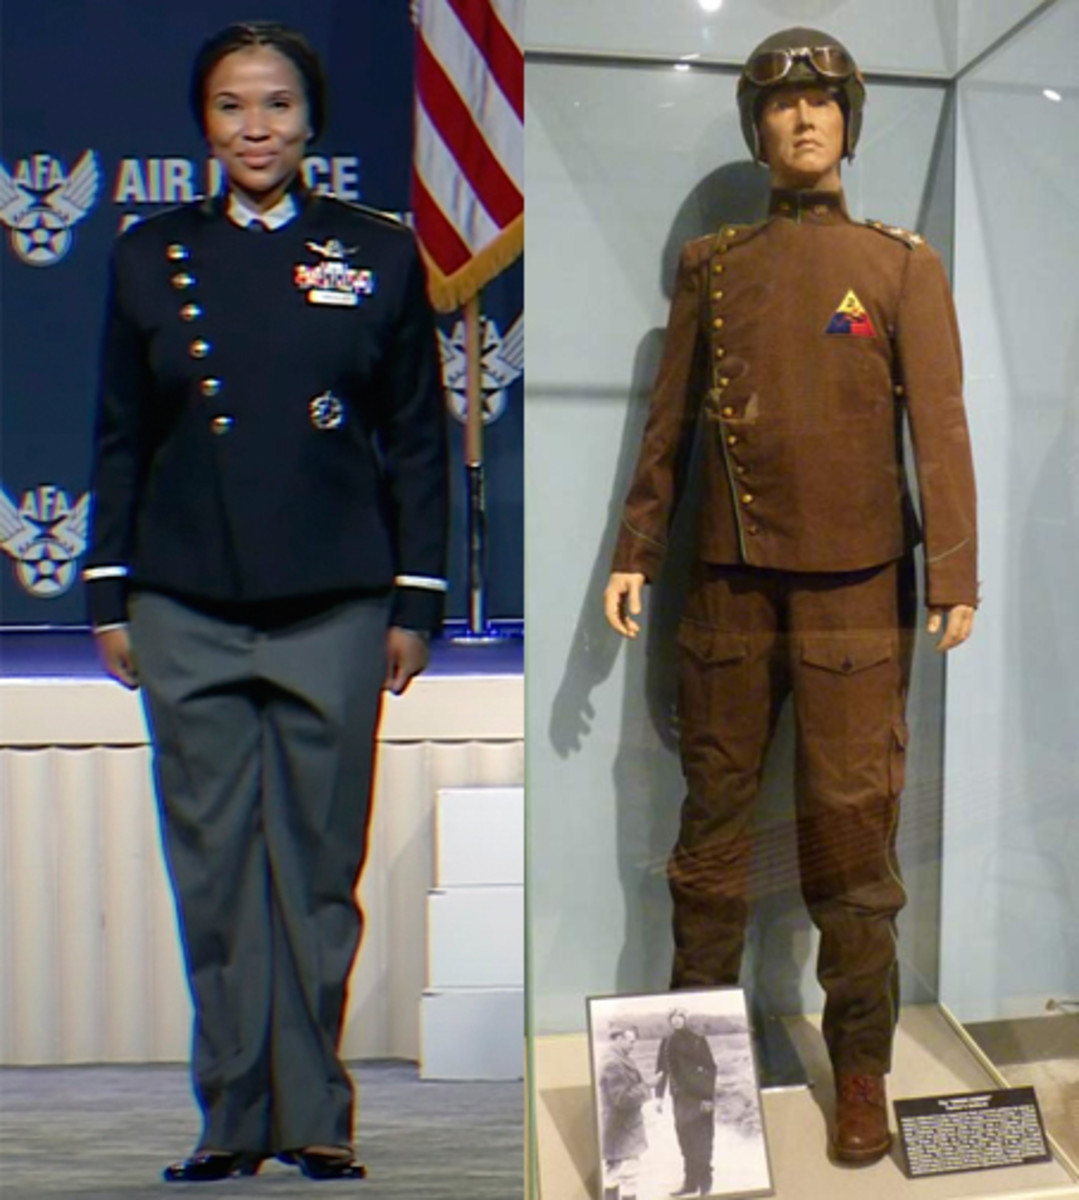 Left: The prototype design of USSF's uniform revealed on Sept. 21, 2021. On the right, a reconstruction of General Patton's design for the new Armored Branch's uniform from the 1930s.